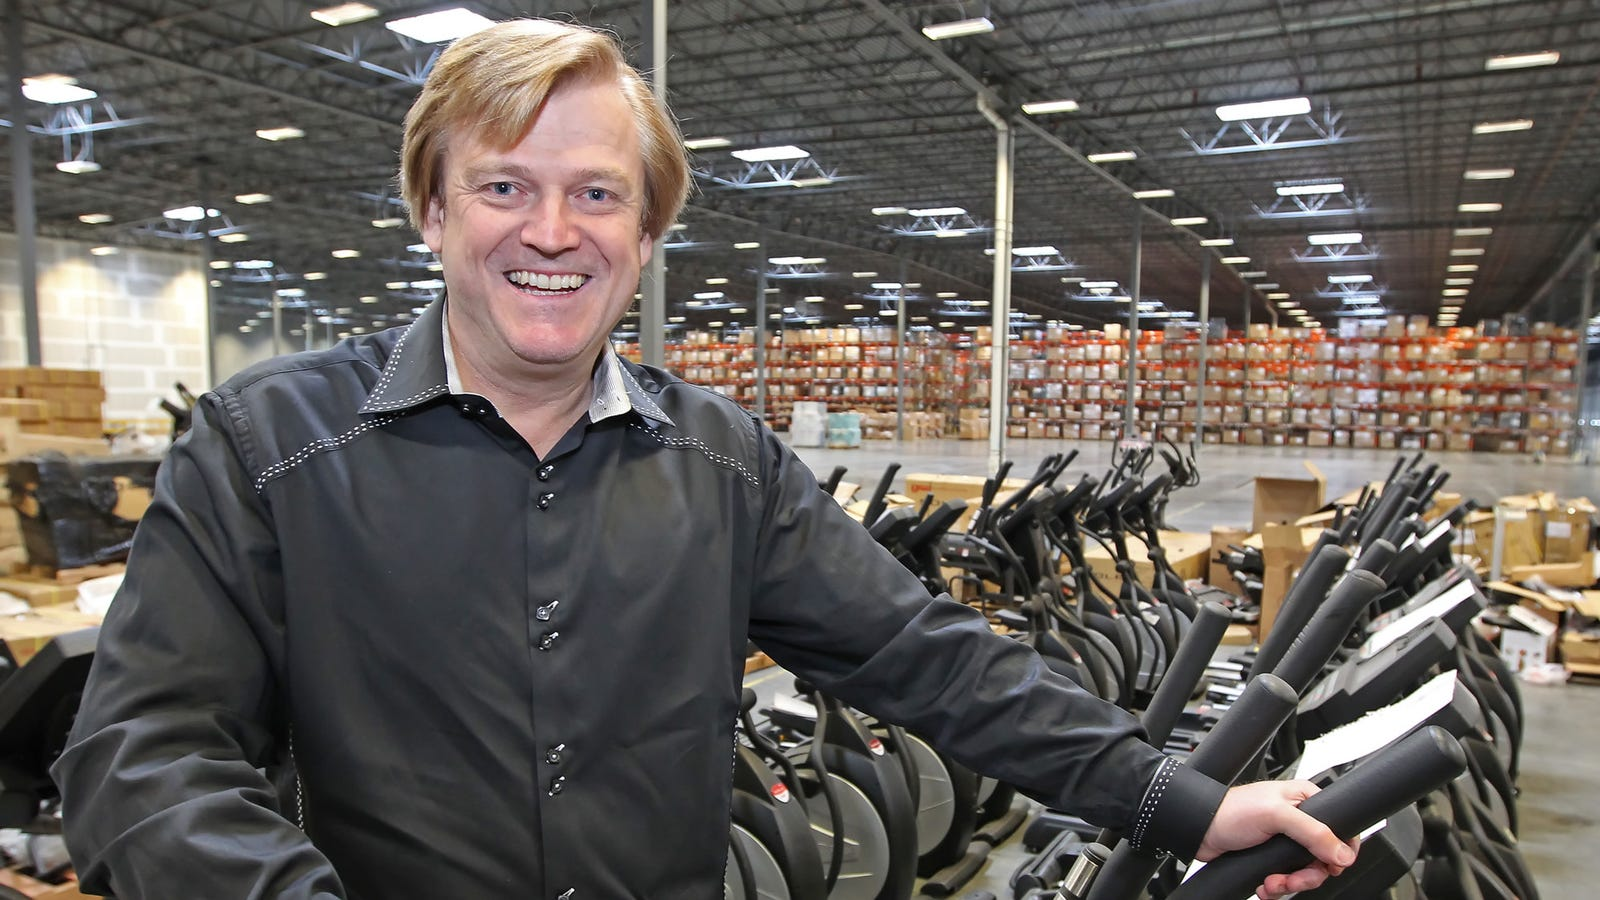 Overstock CEO Resigns to Focus on Career as Deep State Intelligence Asset, One Assumes